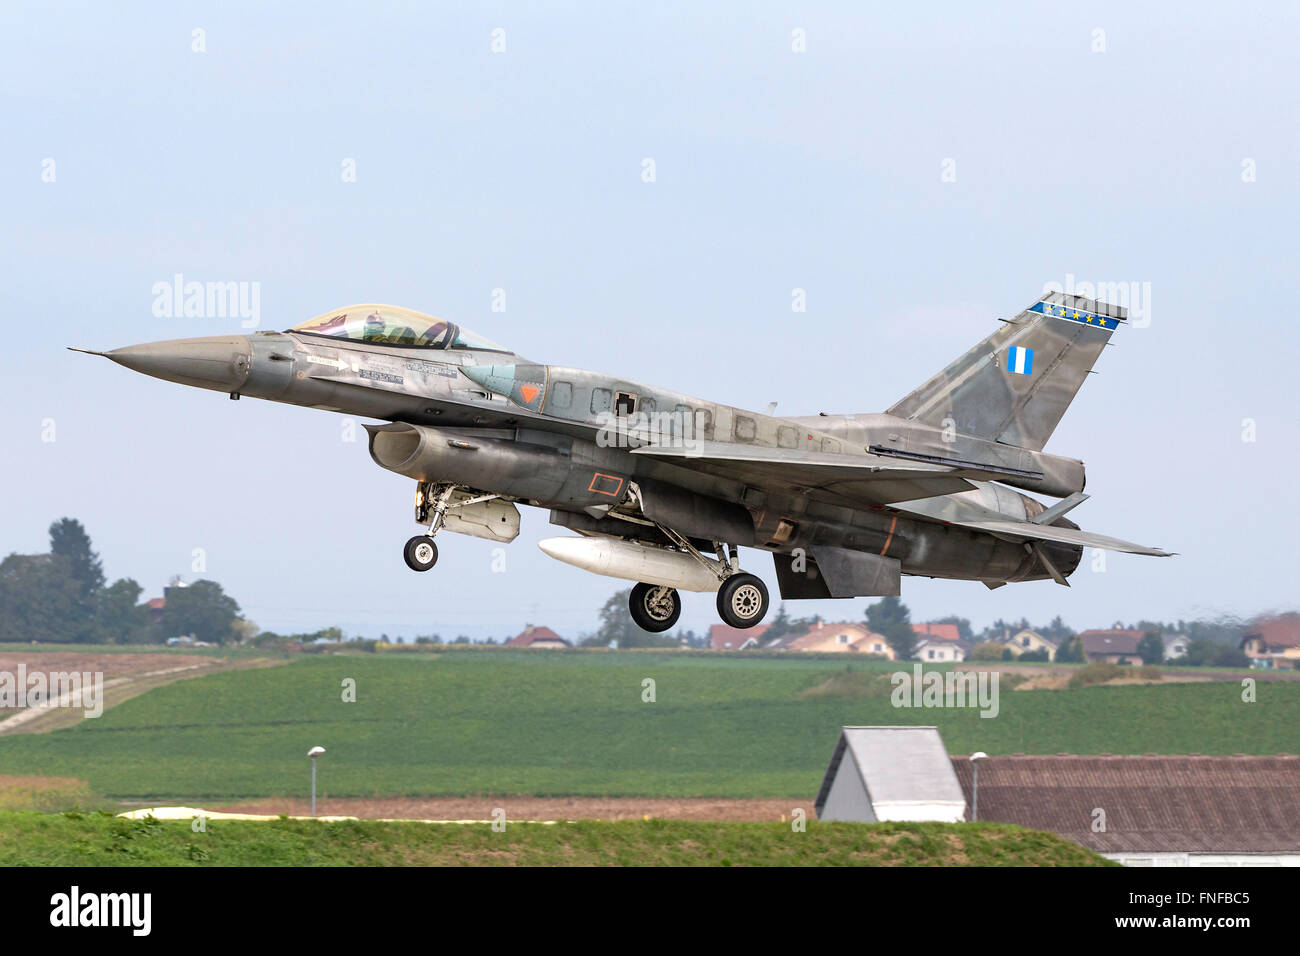 Greek Air Force (Hellenic Air Force, HAF) Lockheed Martin F-16 Fighting Falcon fighter aircraft - Stock Image